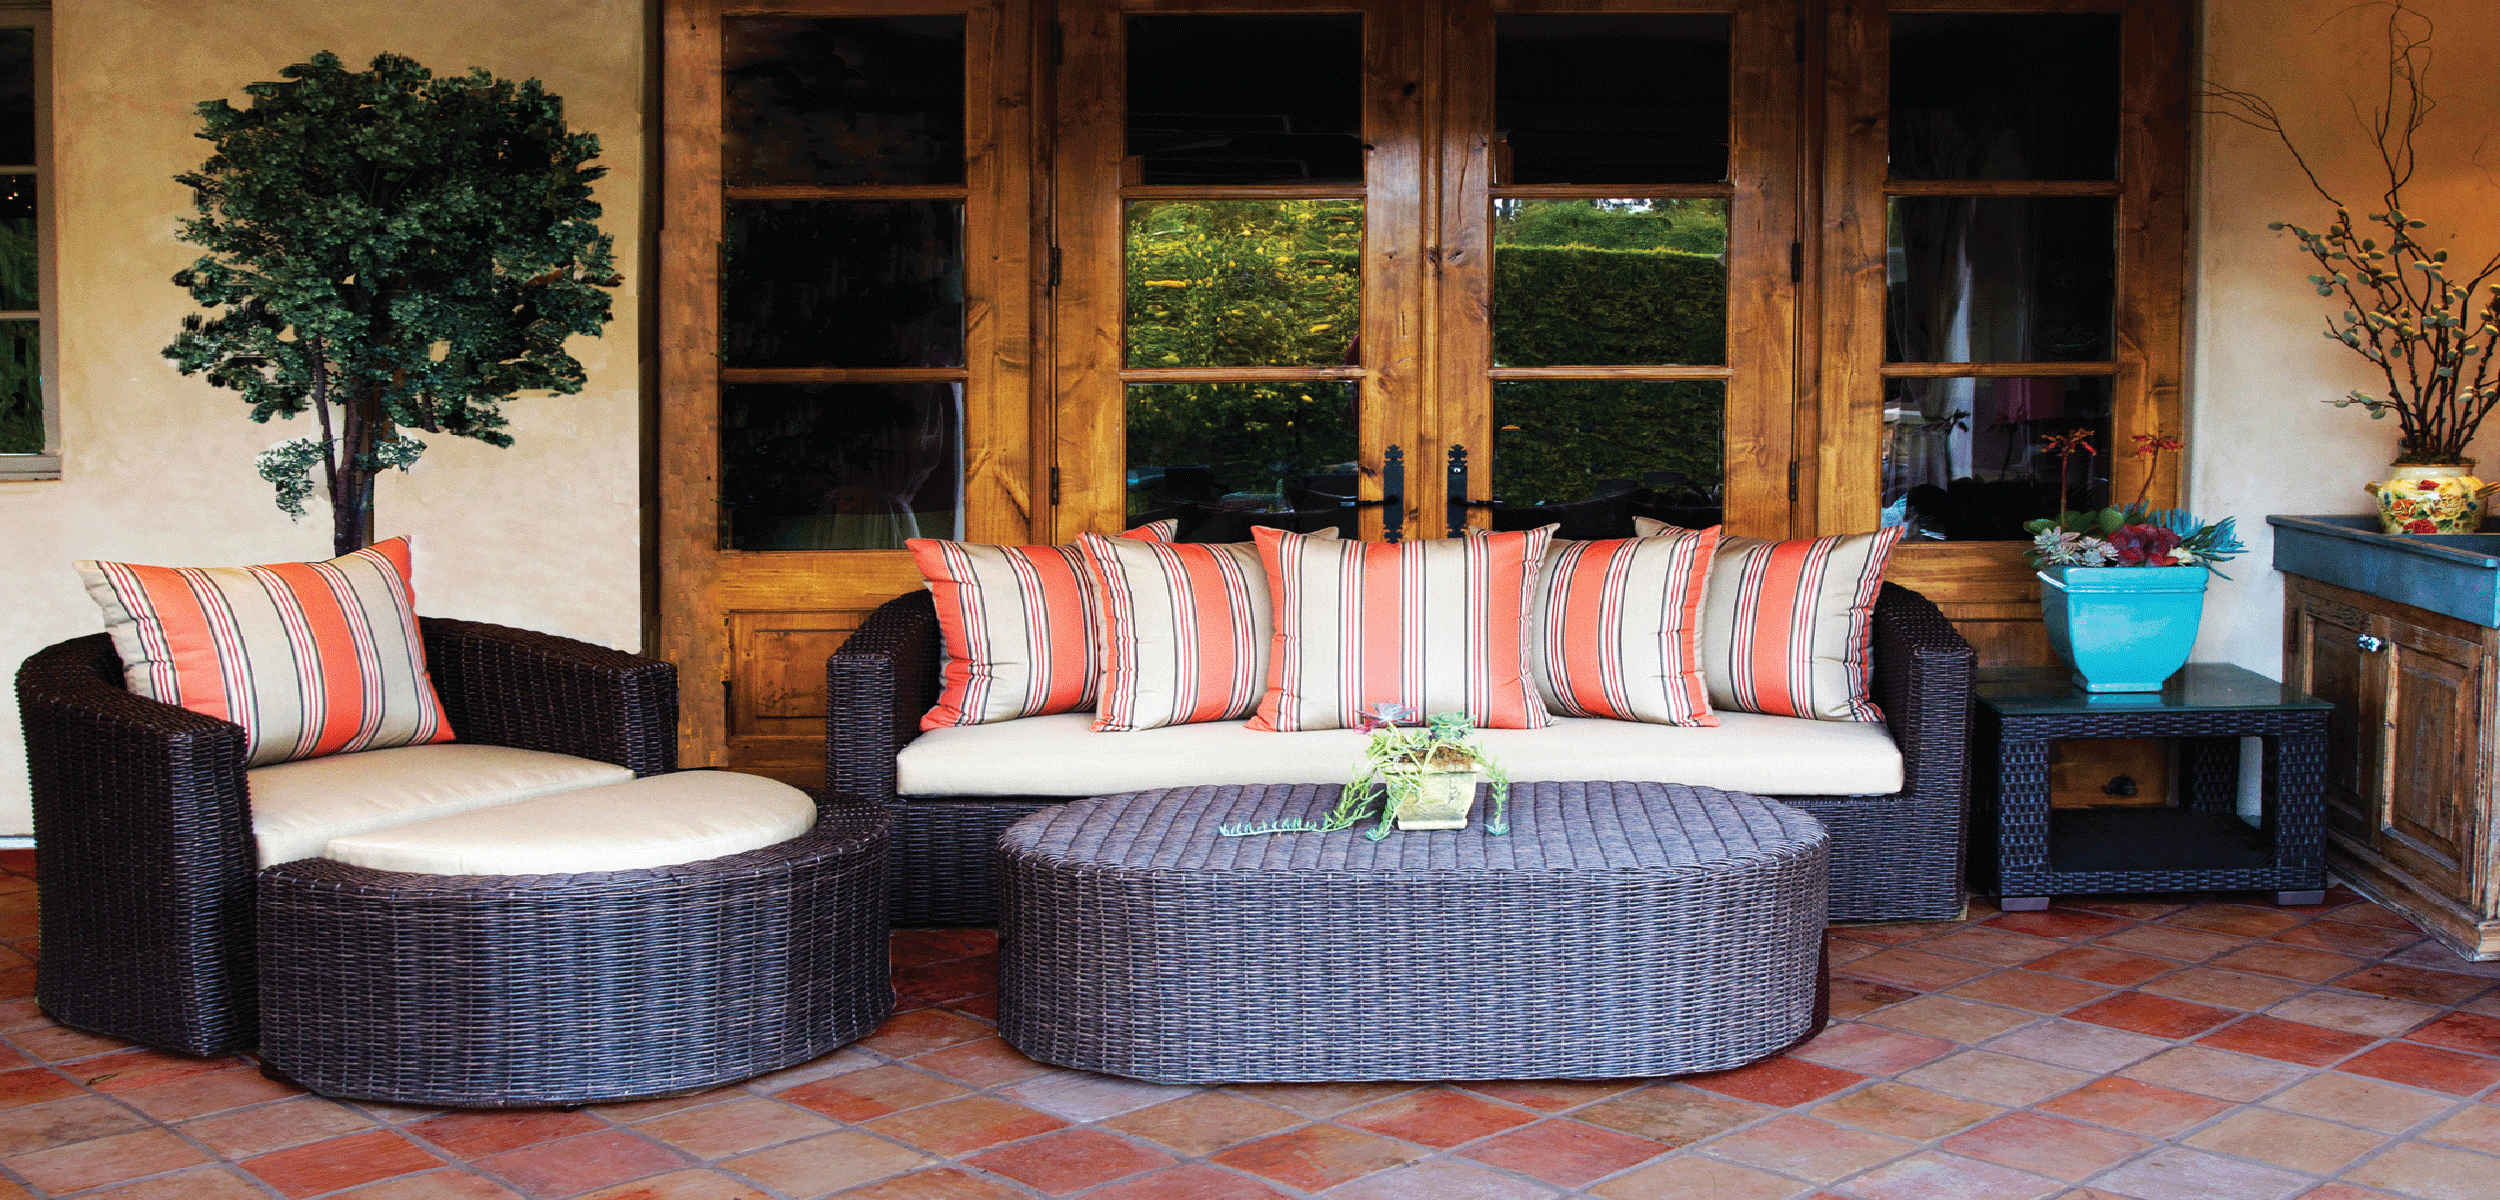 Palomar Patio Furniture Collection